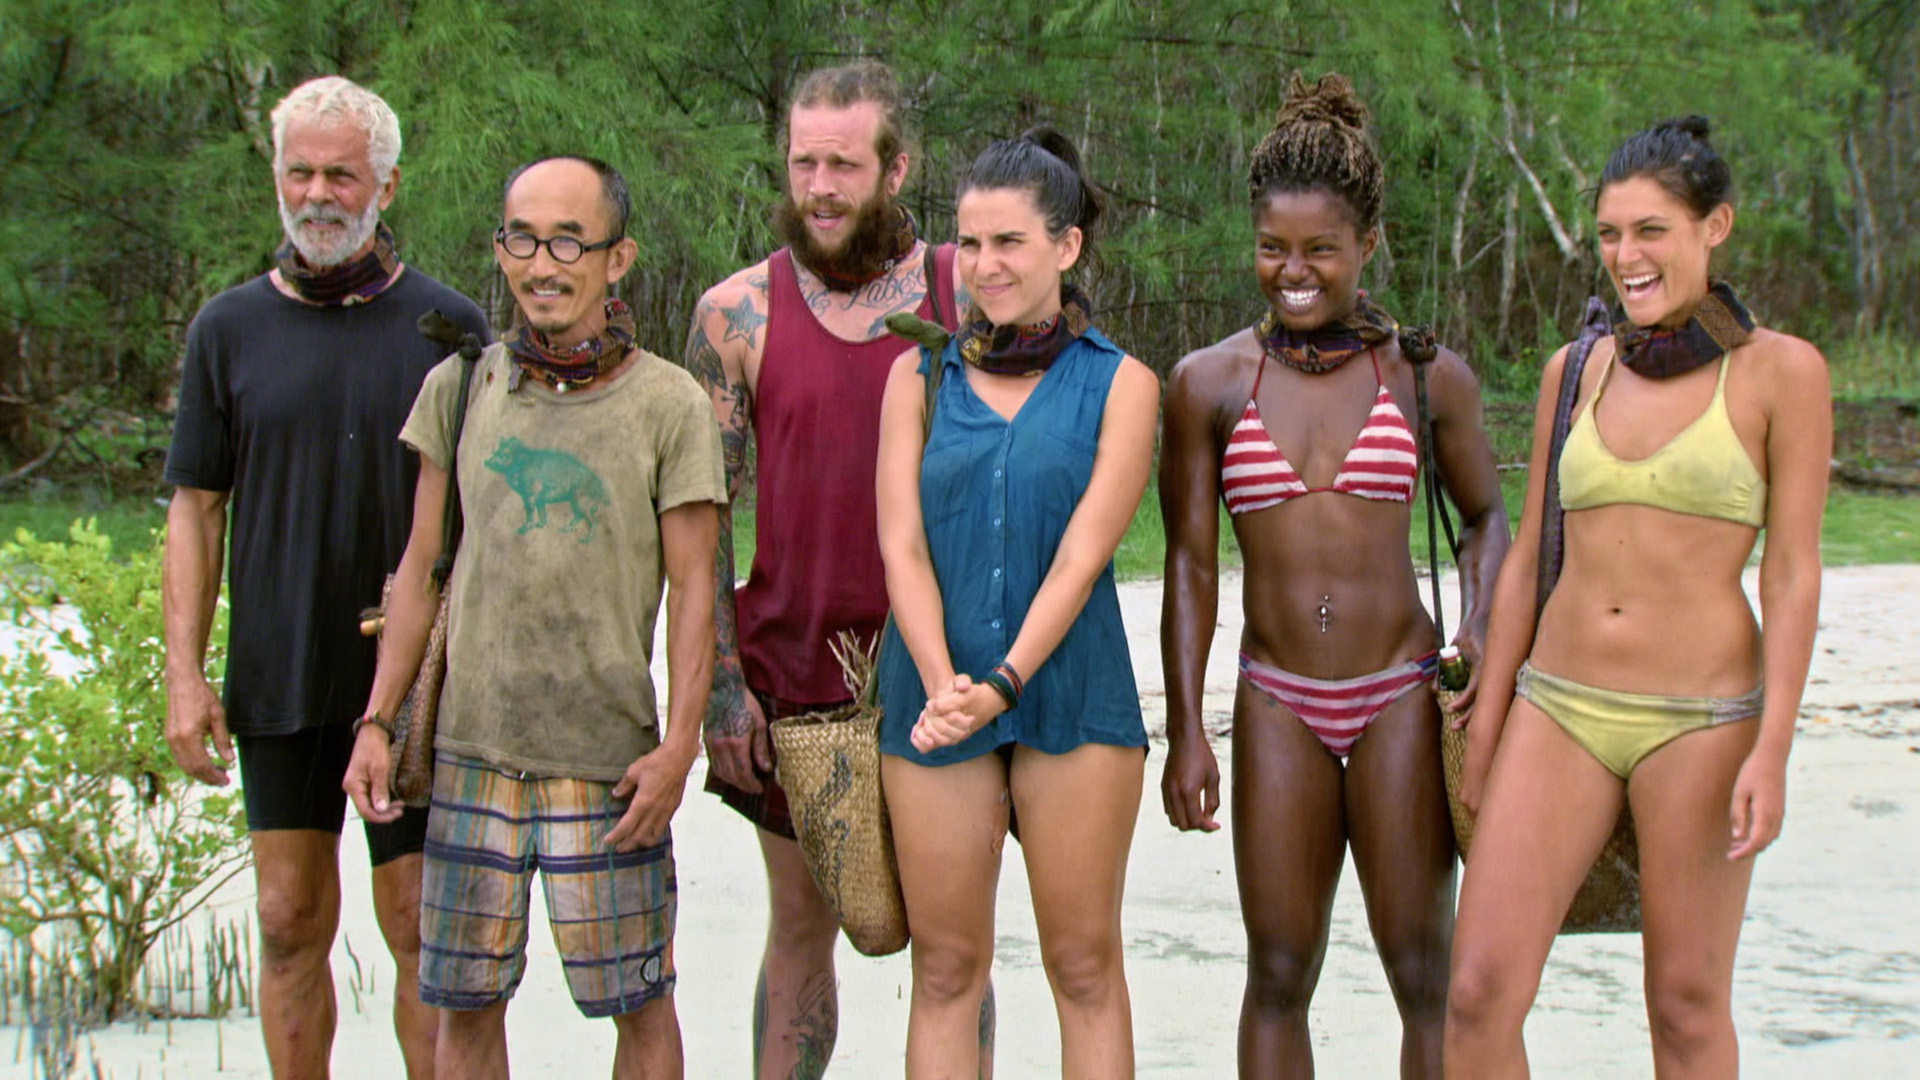 The Final 6 castaways get ready to compete for a shot in the Final 5.